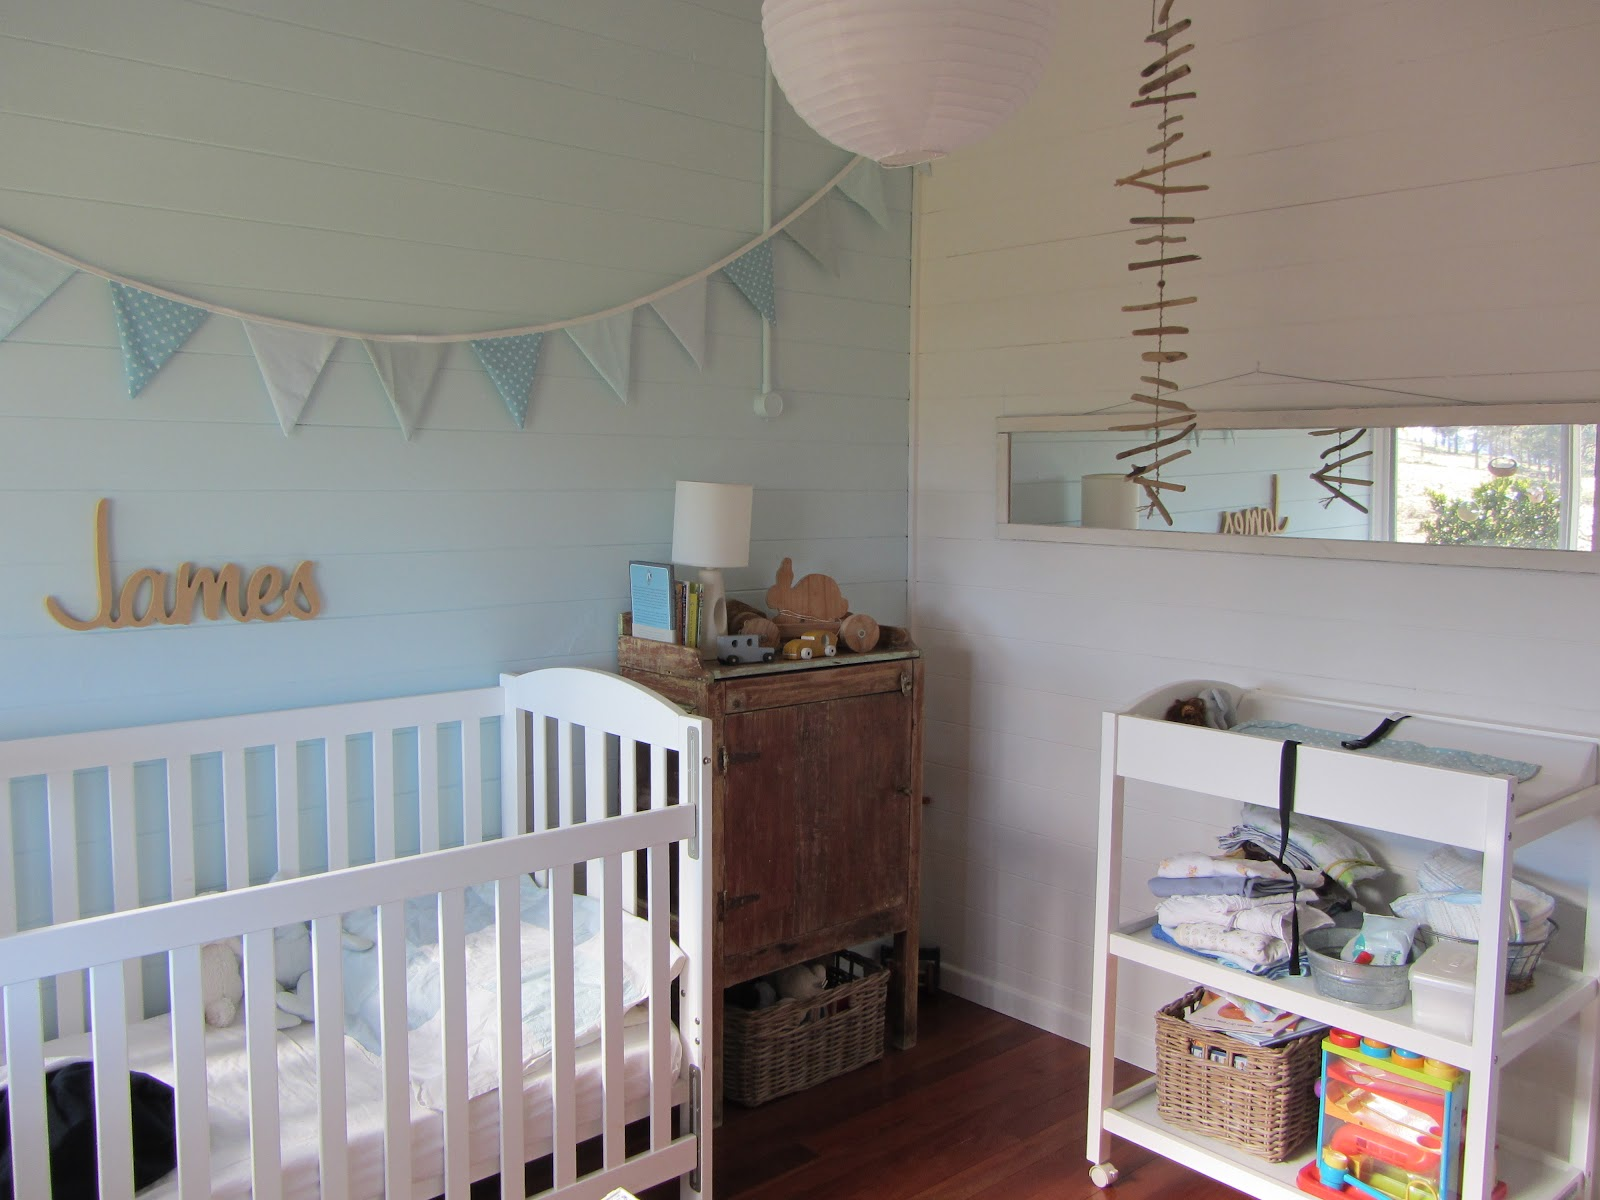 Baby nursery cute decorations twin baby nursery ideas saveemail - Baby Boy Bedroom Ideas Baby Rooms Decor Baby Bedroom Part 55